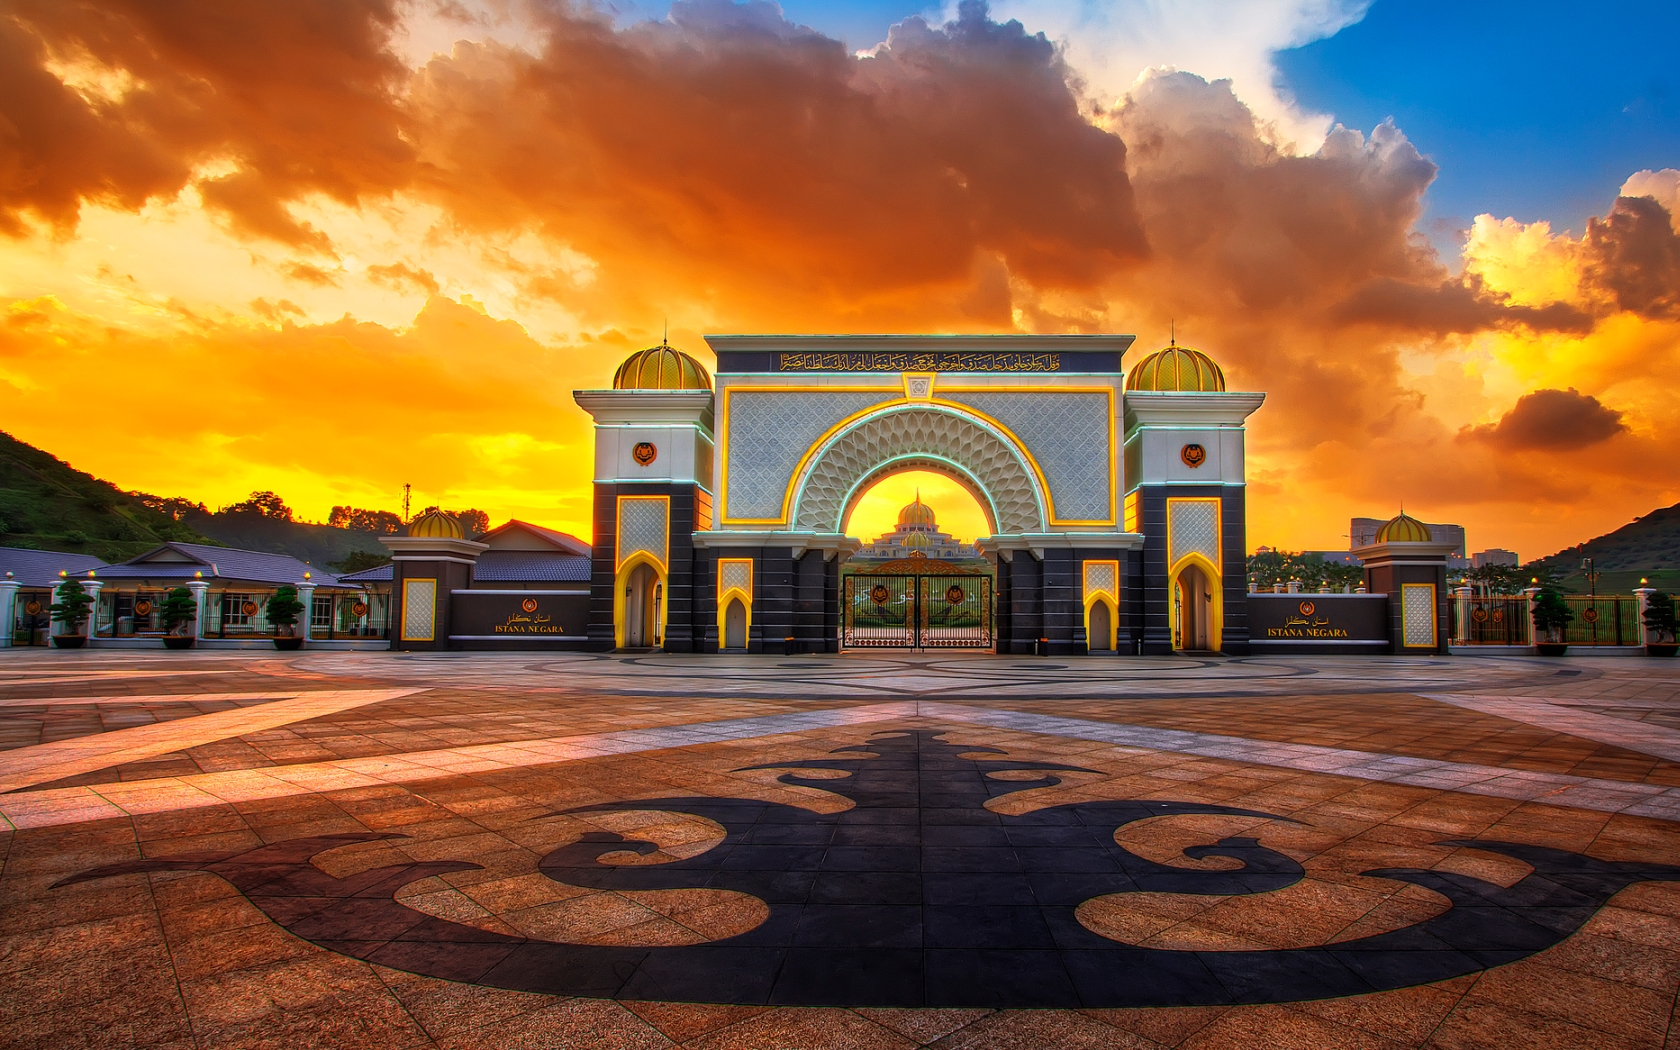 Hd Background Wallpaper 800x600: 9 Istana Negara, Jakarta HD Wallpapers